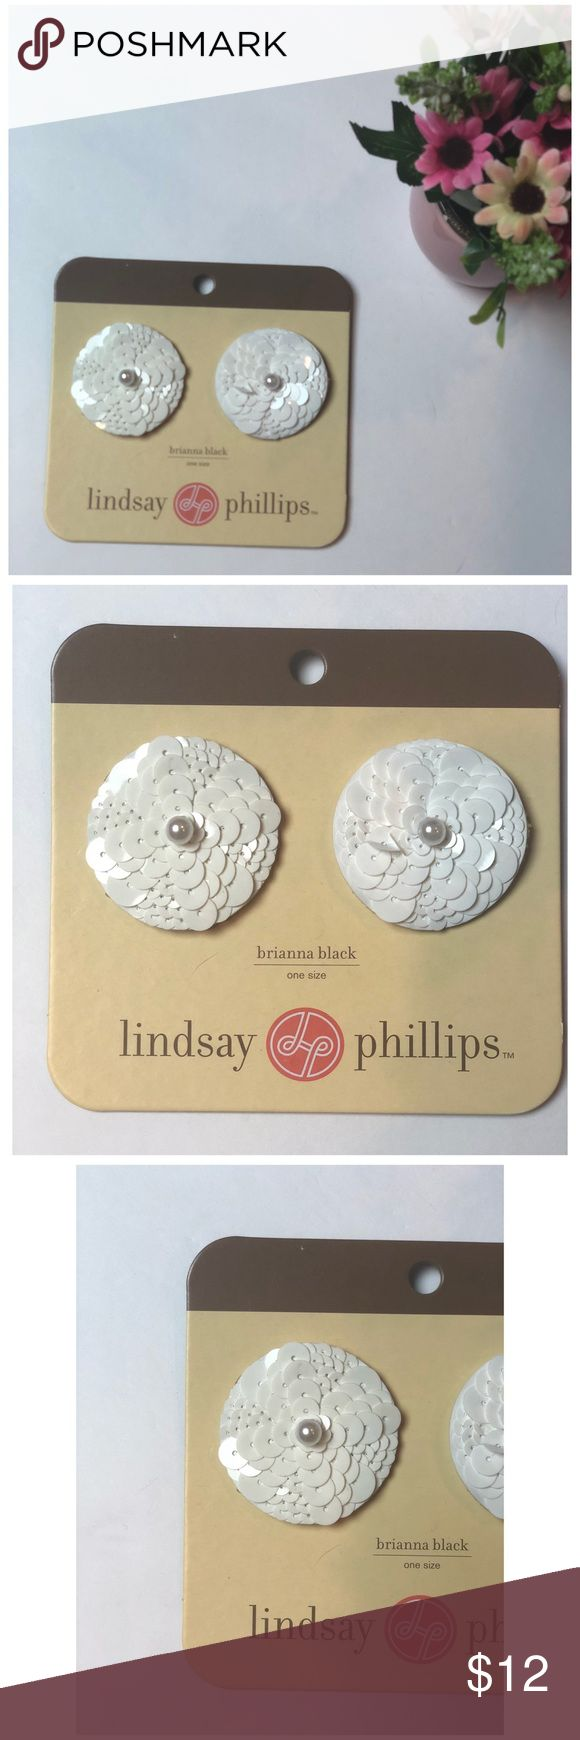 Lindsay Phillips White Flower Snaps With Pearl Lindsay Phillips Snap buttons. Beautiful White color with pearl accent in the middle. Matches any Lindsay Phillip snap shoes including flats and flip flops. Never used. Brand new packaging. Bundle with other snap kits in my closet to save!!!   Brianna Black Lindsay Phillips Shoes